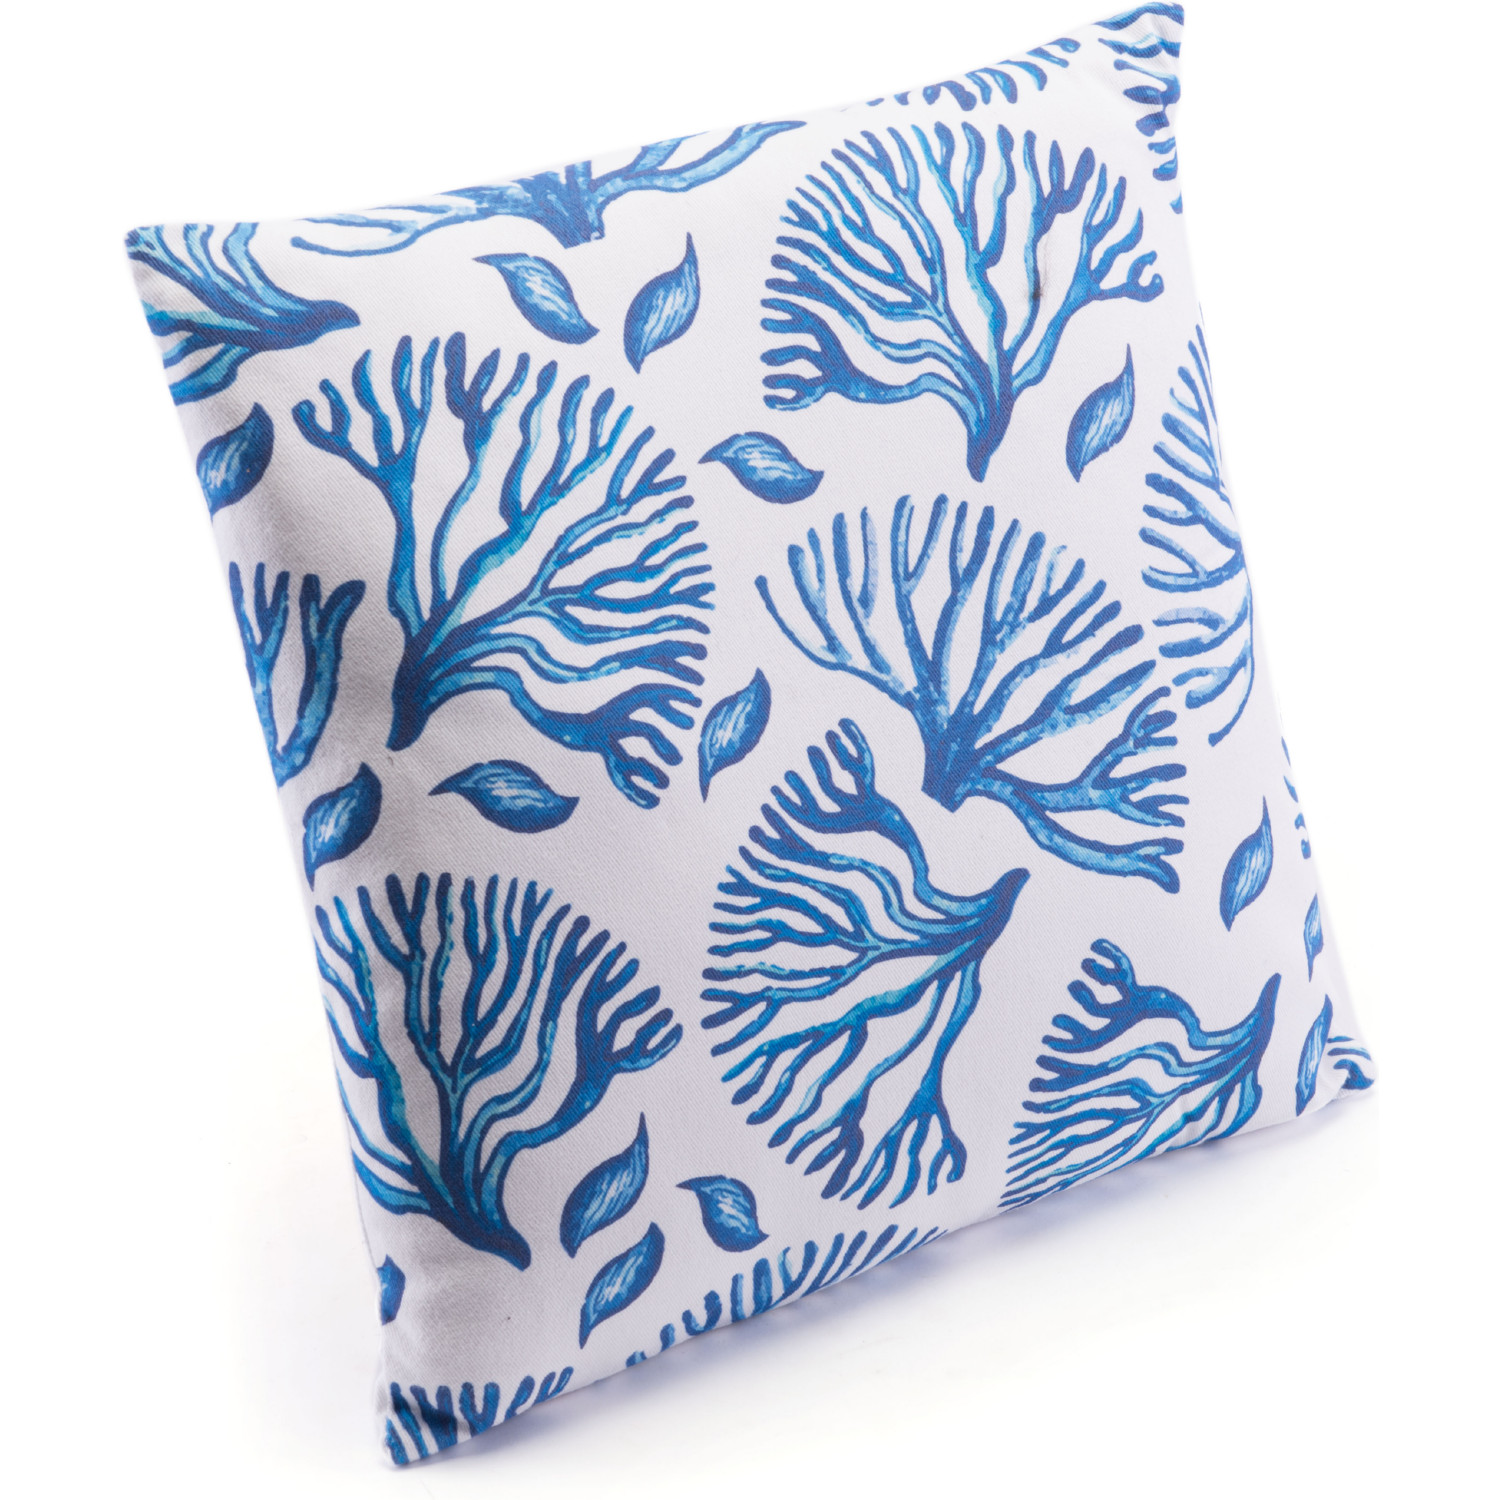 Sensational Blue Coral Pillow In Blue White Denim By Zuo Beatyapartments Chair Design Images Beatyapartmentscom